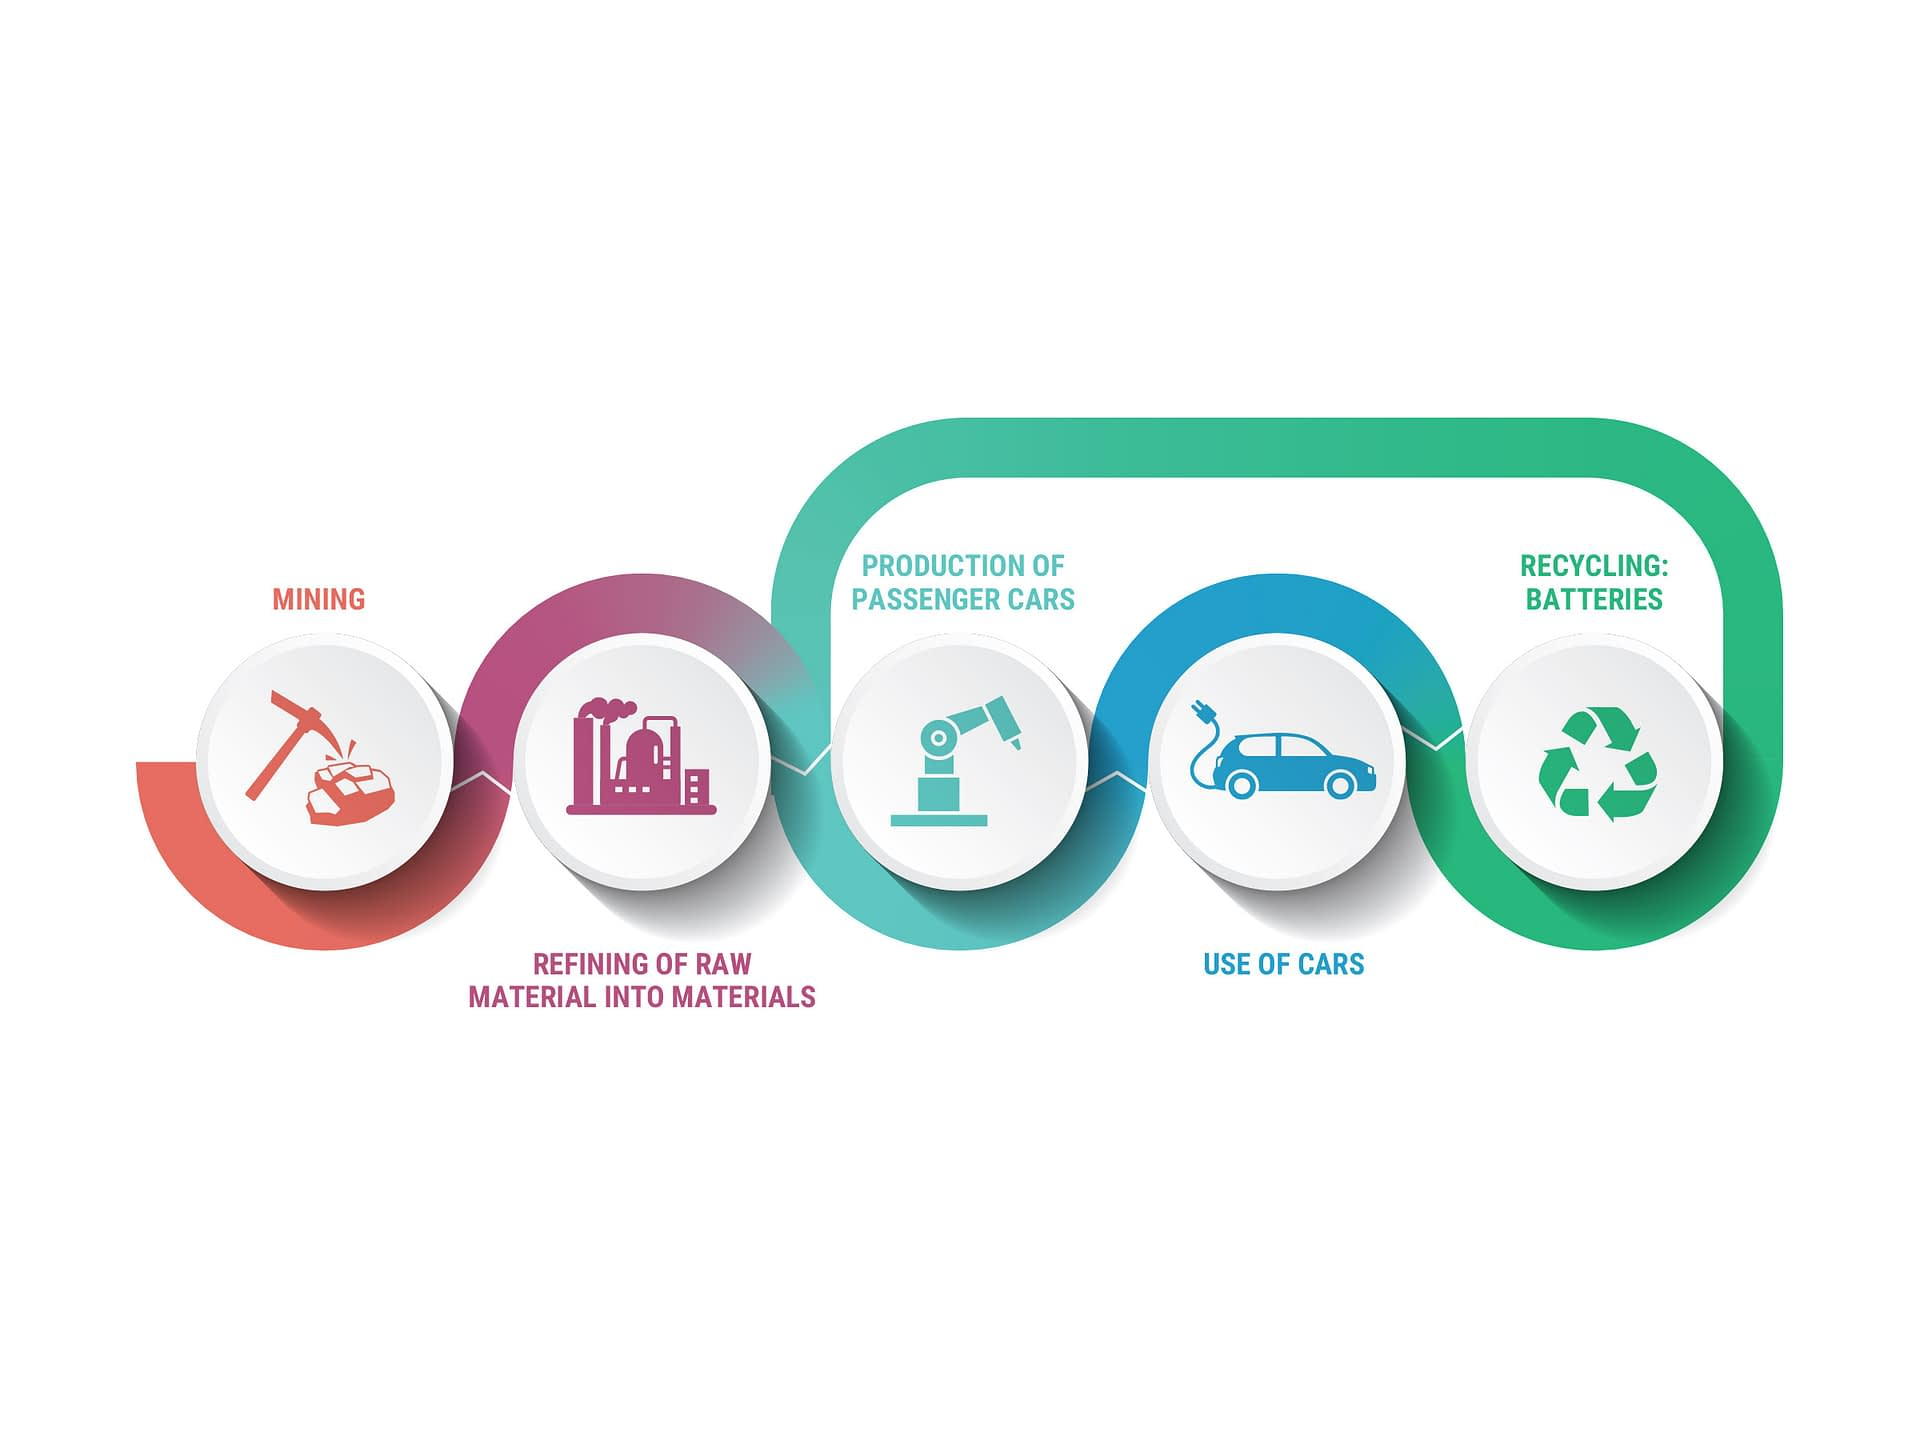 Developing the capacity to recycling critical metals is key to long-term sustainability.